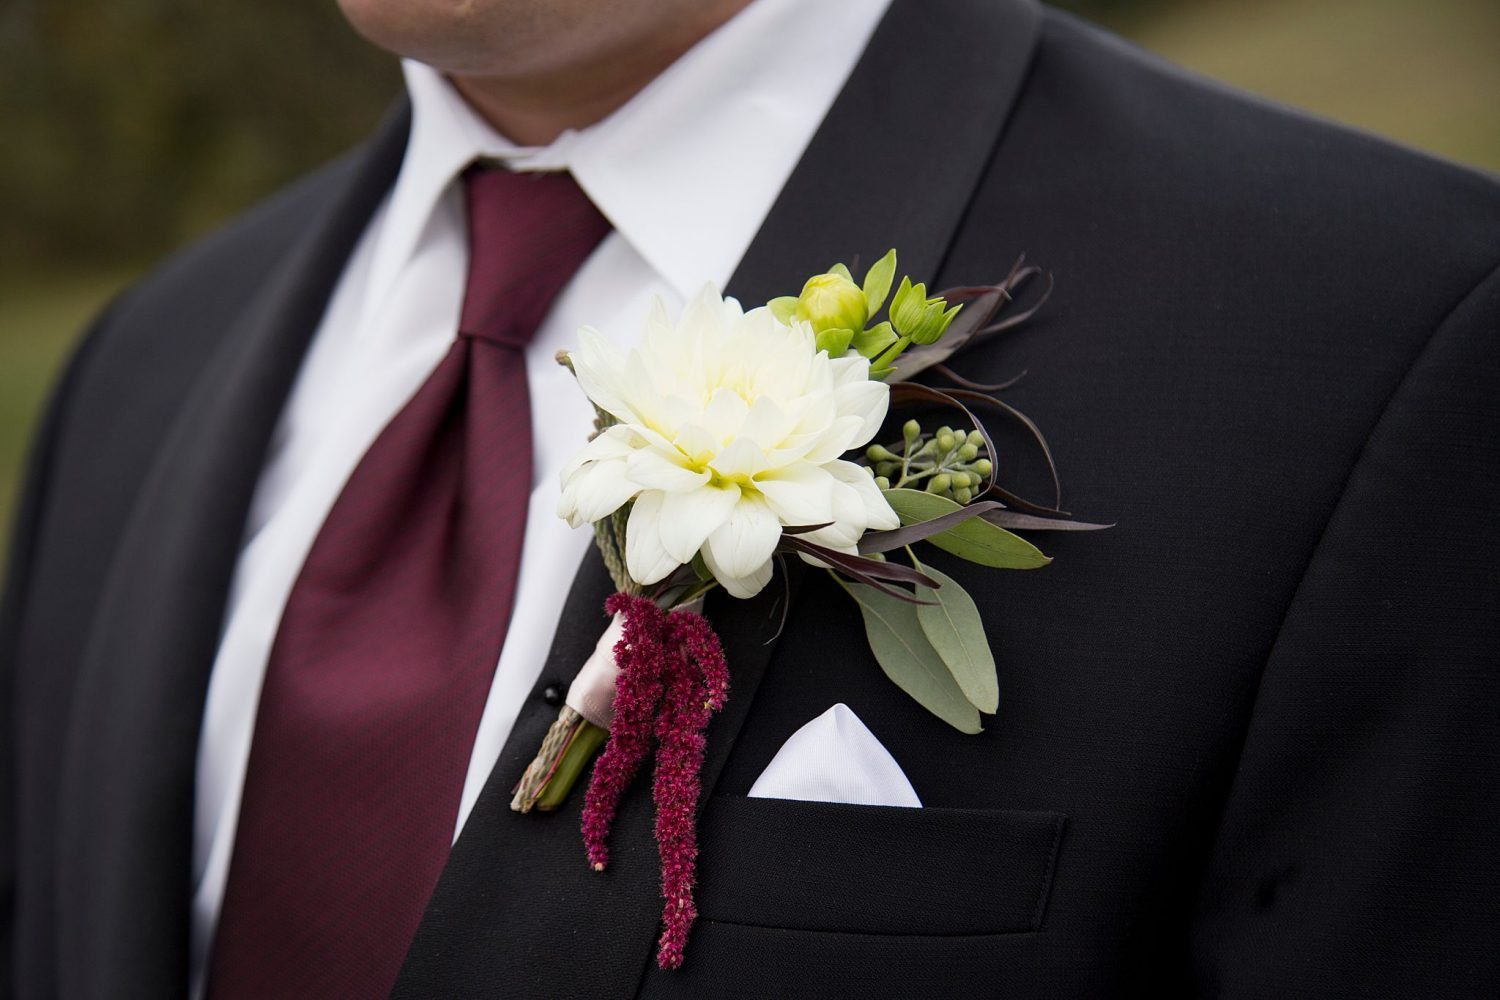 Close up of the groom's burgundy tie and white boutonniere.